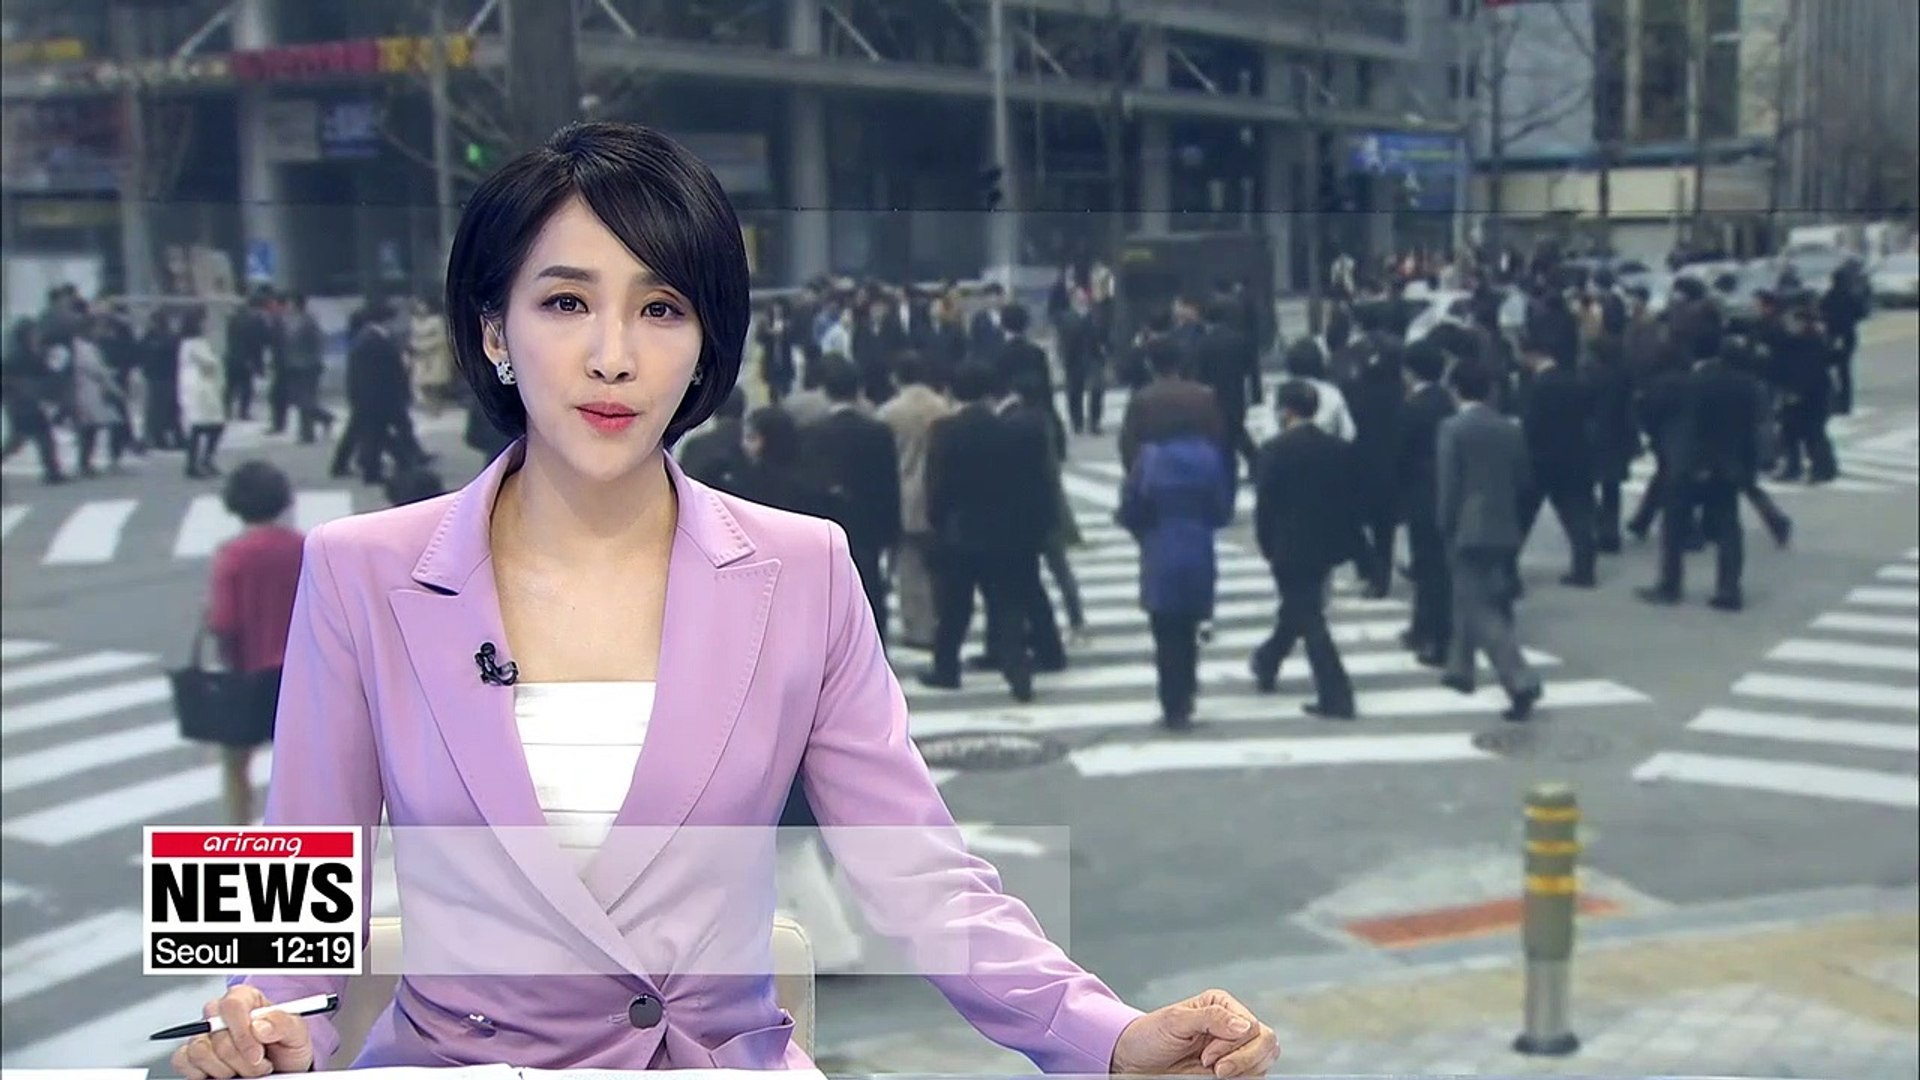 Seoul City clamping down on gender-based wage gap